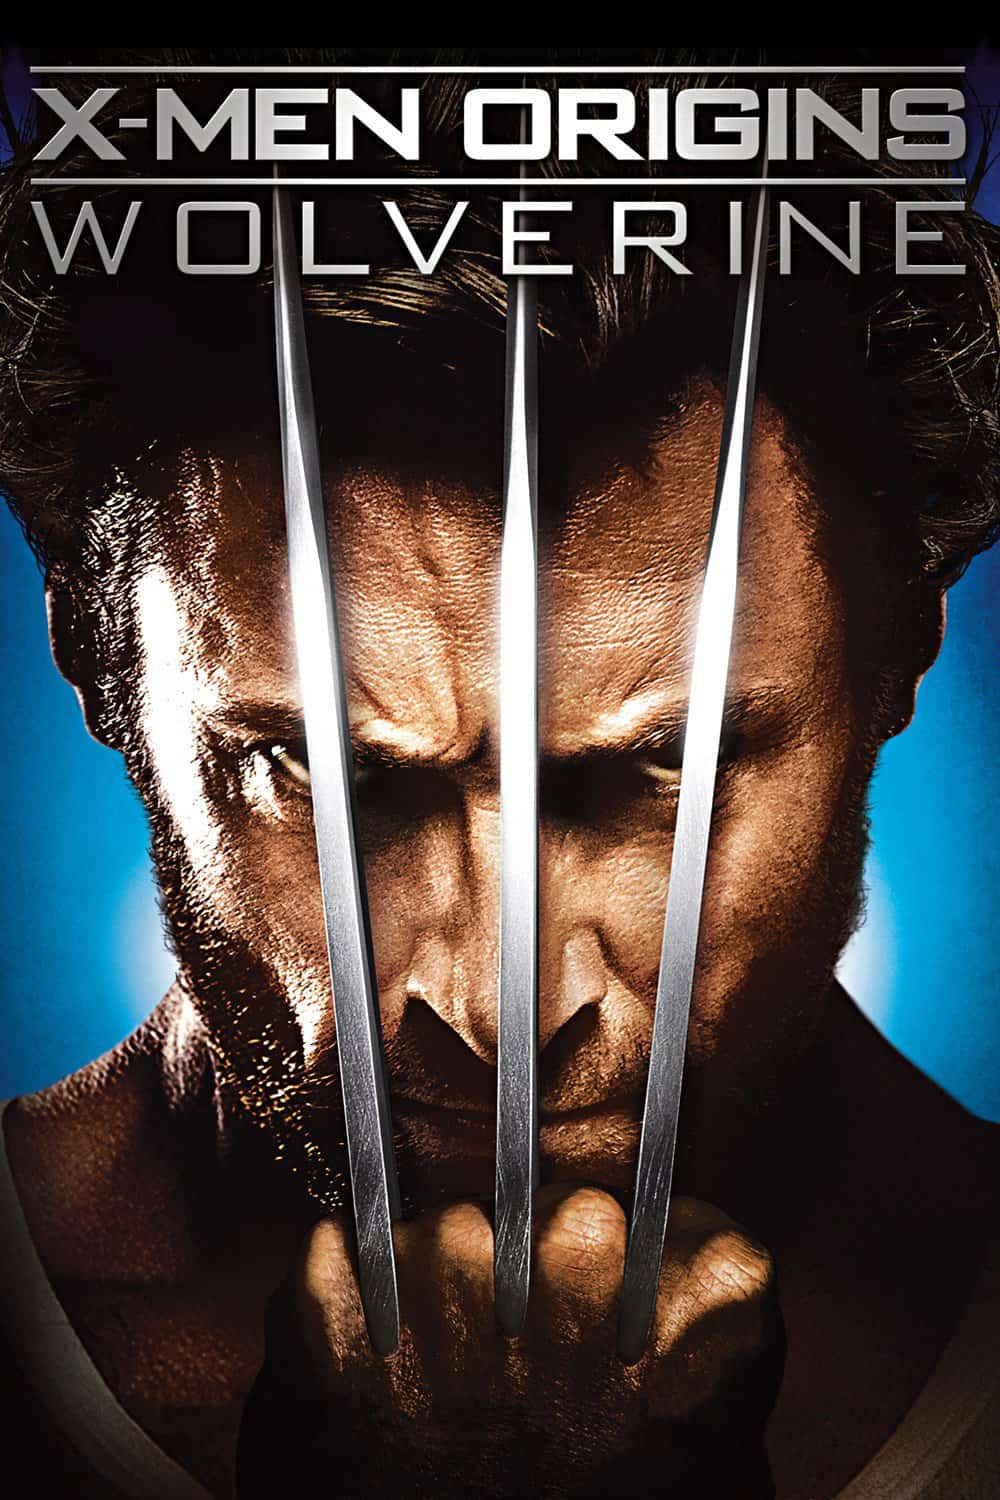 X-Men Origins: Wolverine, 2009